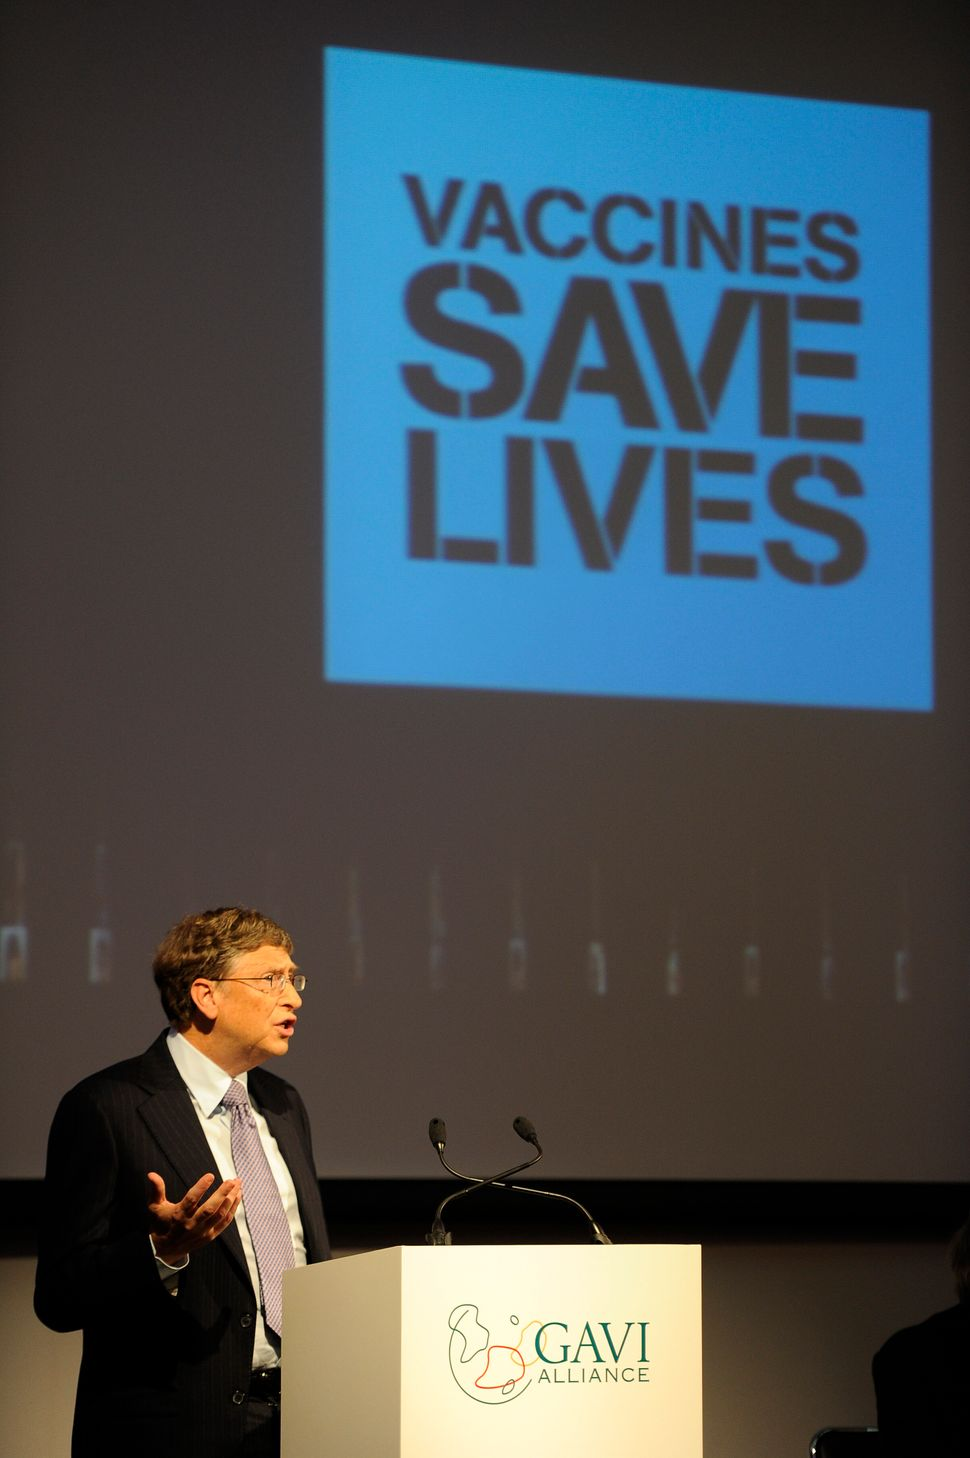 gates-vaccines-save-lives